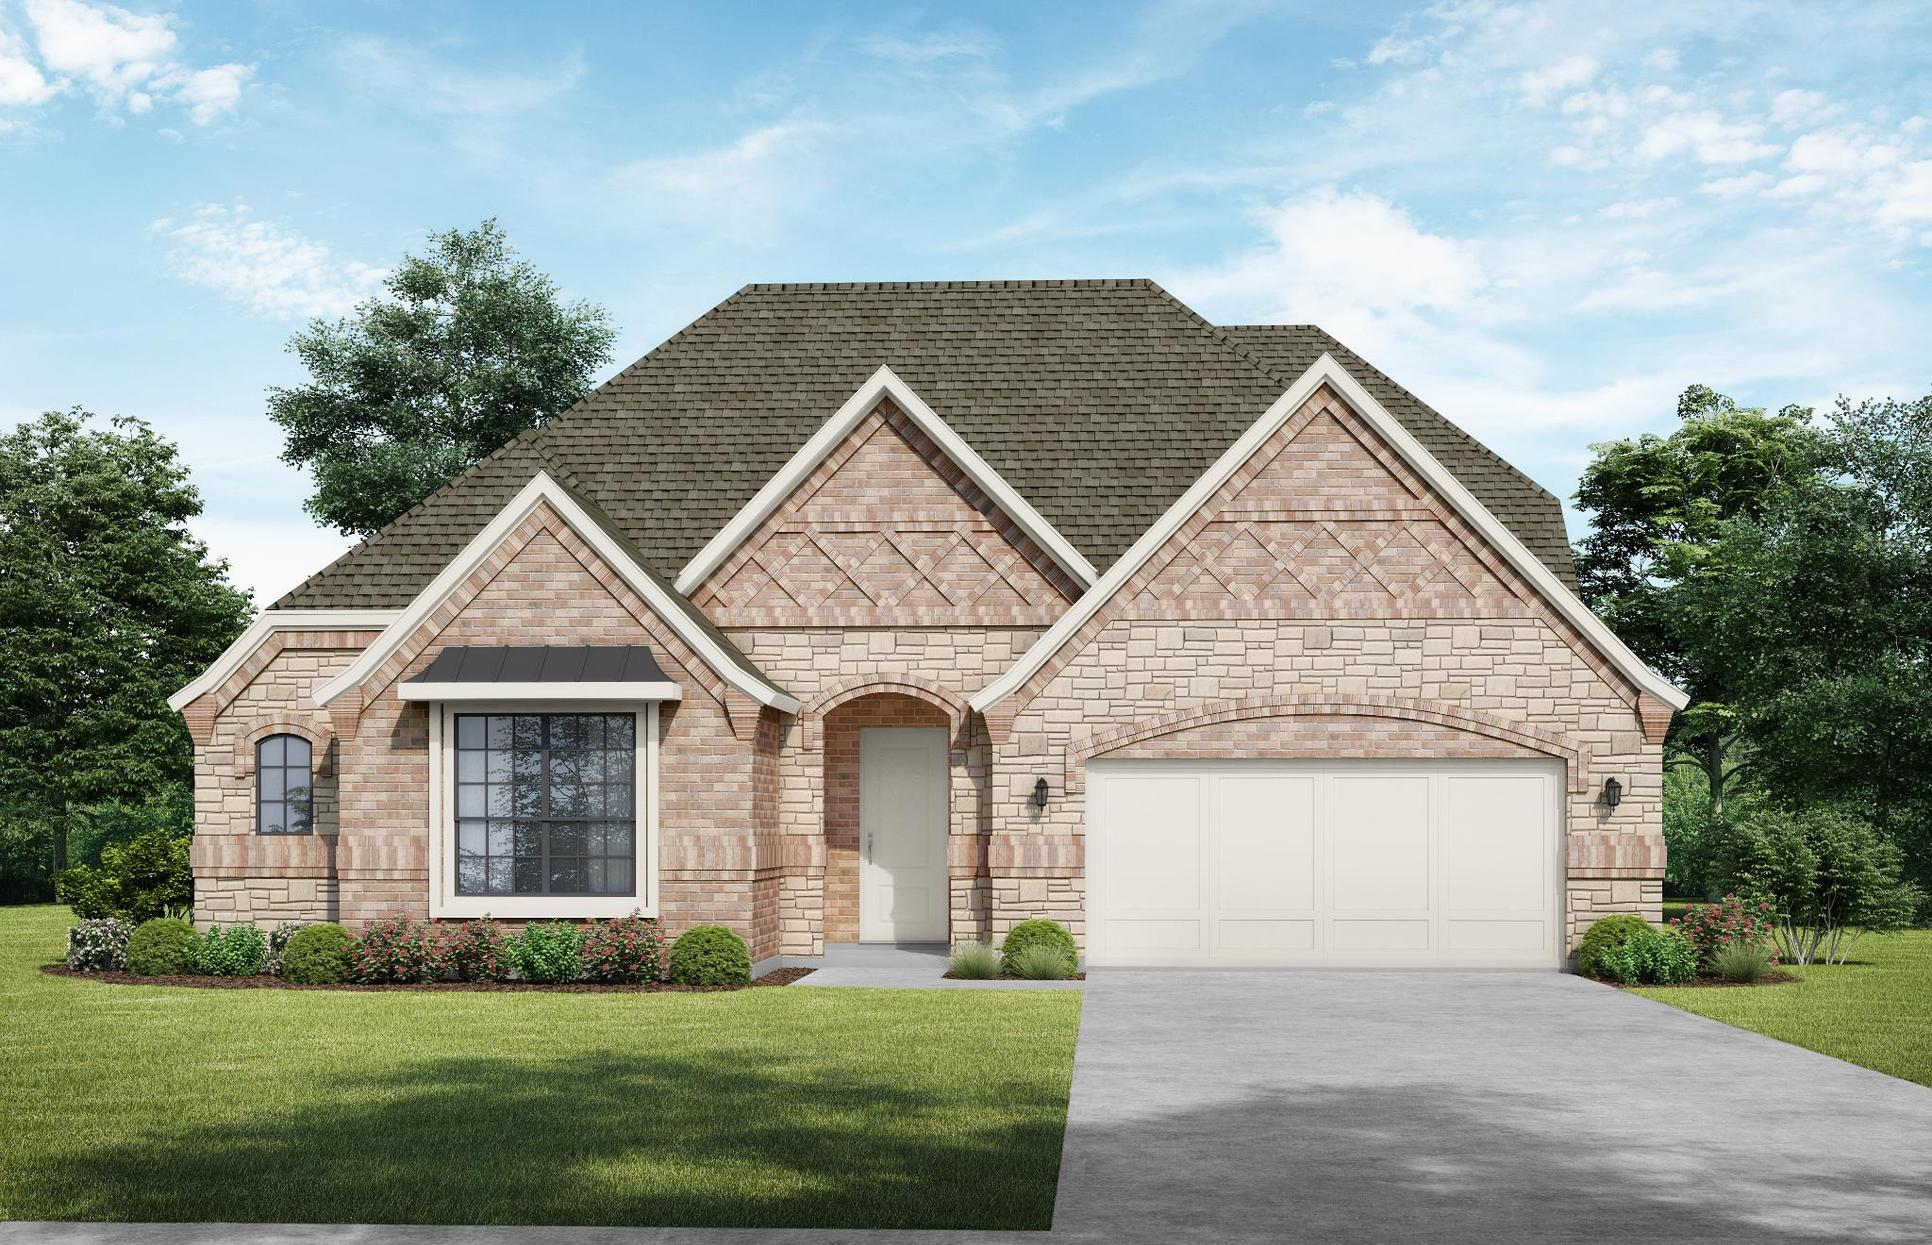 Bellvue Elevation B. Images are artist renderings and will differ from the actual home built.:Bellvue Elevation B